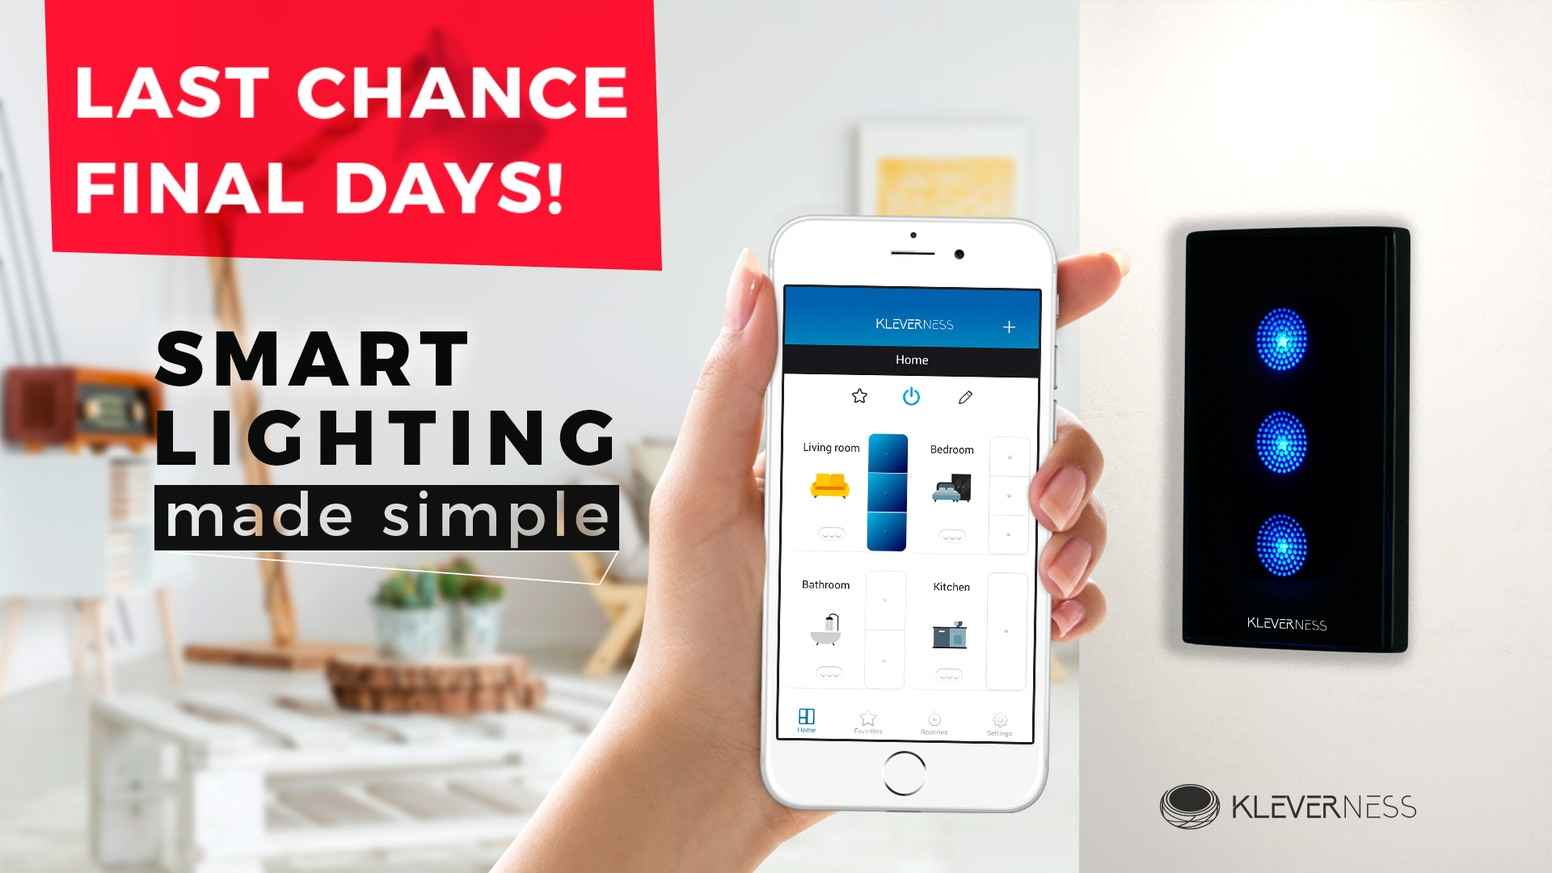 Kleverness Lets You Fully Automate Your Home S Lighting And Control Everything Remotely With No Modifications Or